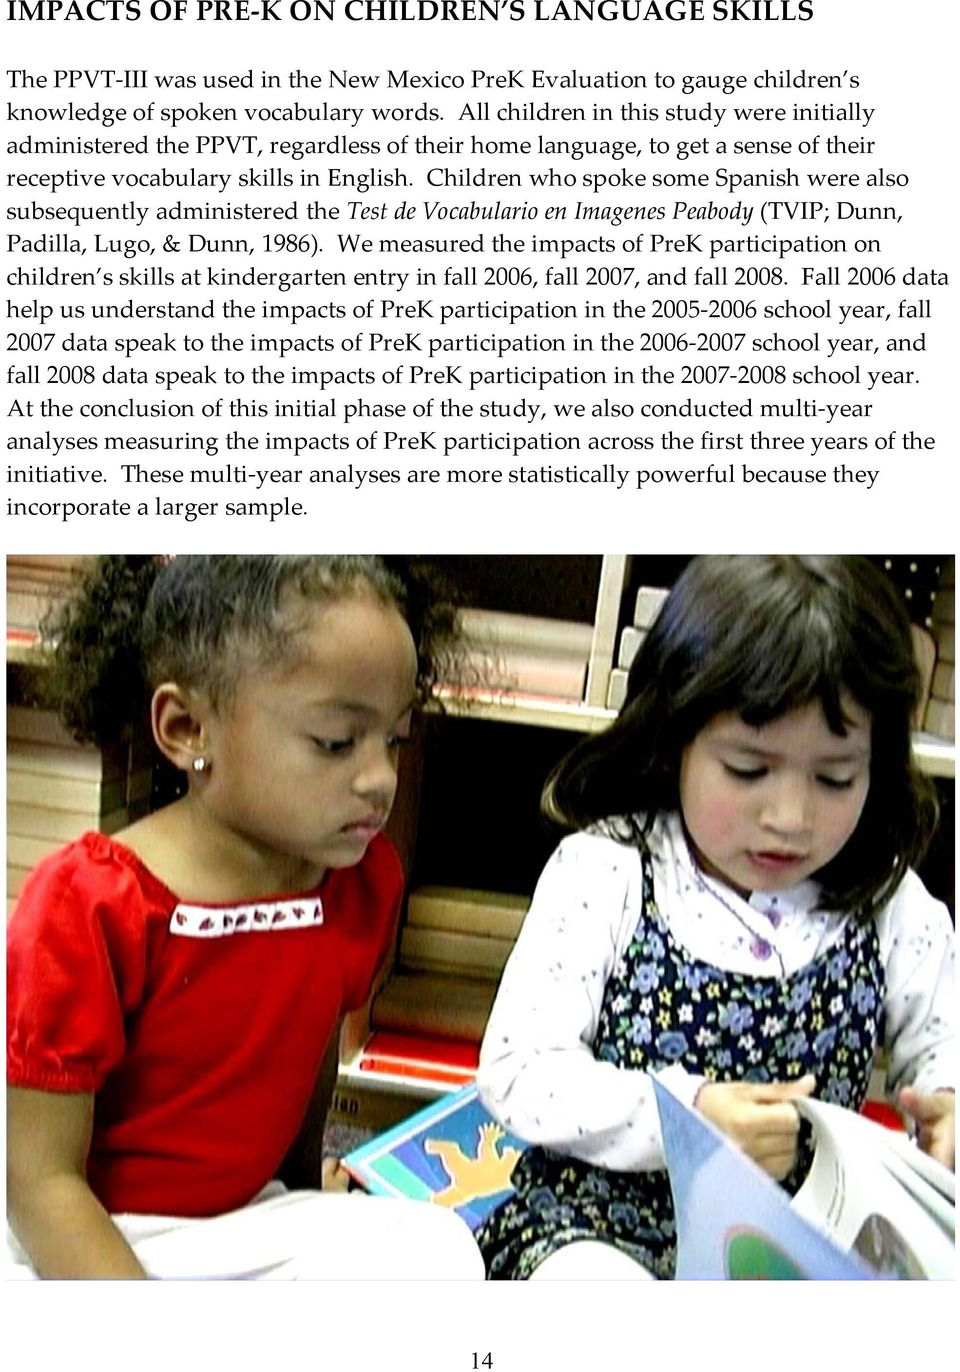 Children who spoke some Spanish were also subsequently administered the Test de Vocabulario en Imagenes Peabody (TVIP; Dunn, Padilla, Lugo, & Dunn, 1986).